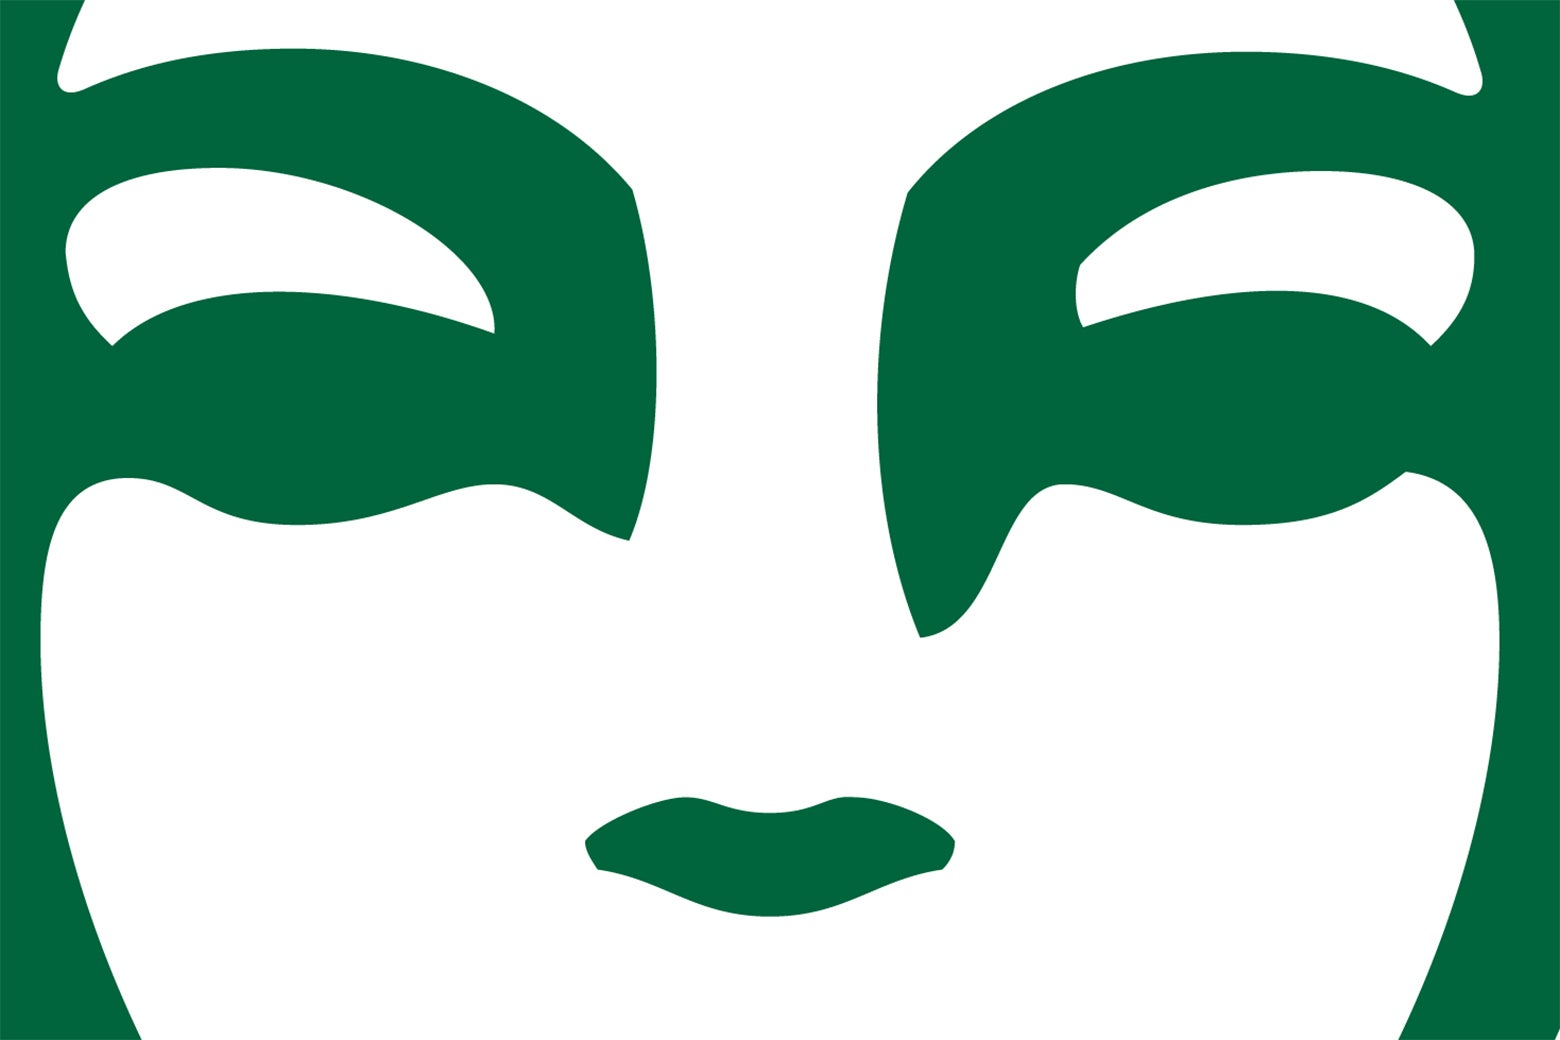 An extreme closeup of the eyes of the siren on the Starbucks logo.